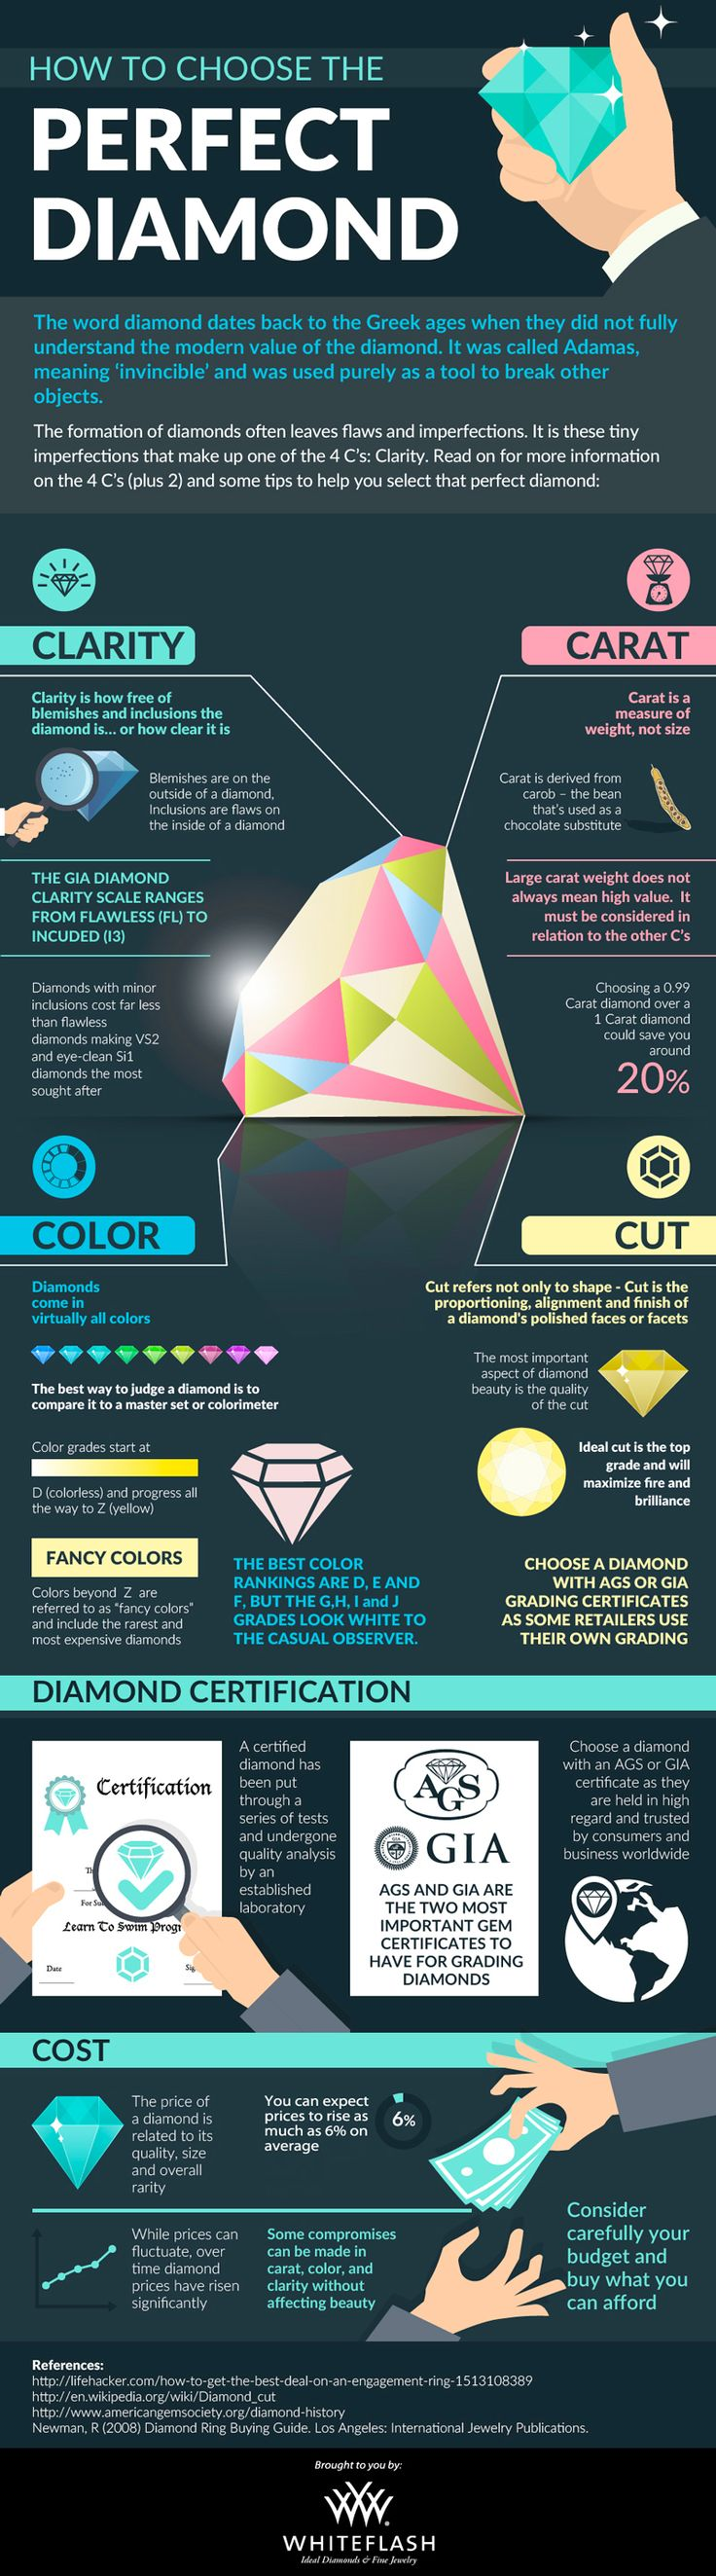 magnetband grading diamond color dolap charts diamondcolorchart and co clarity chart